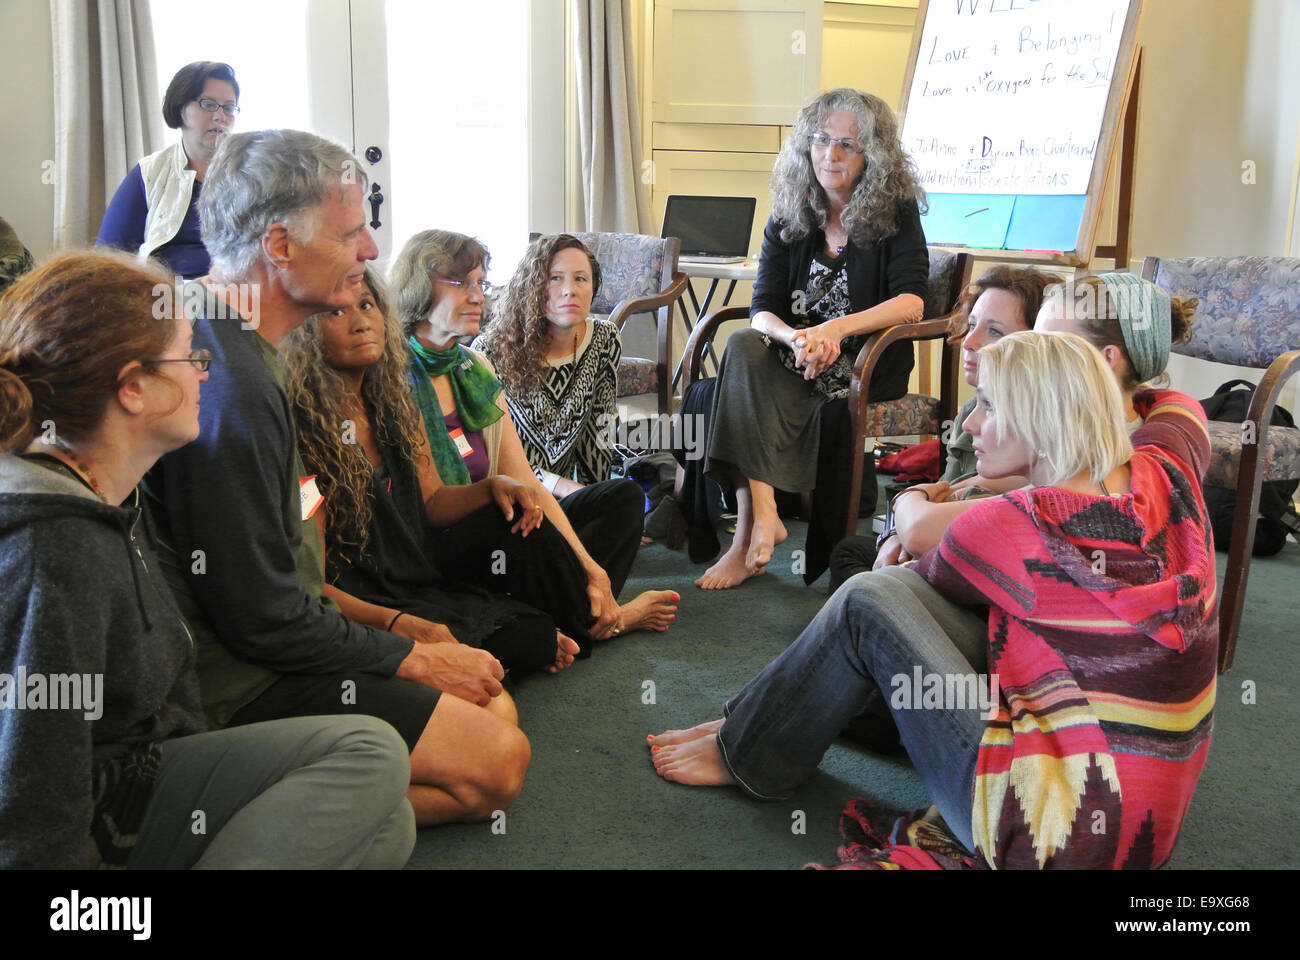 adult in group therapy constellation workshop interact with others at Esalen Institute in Big Sur California Stock Photo